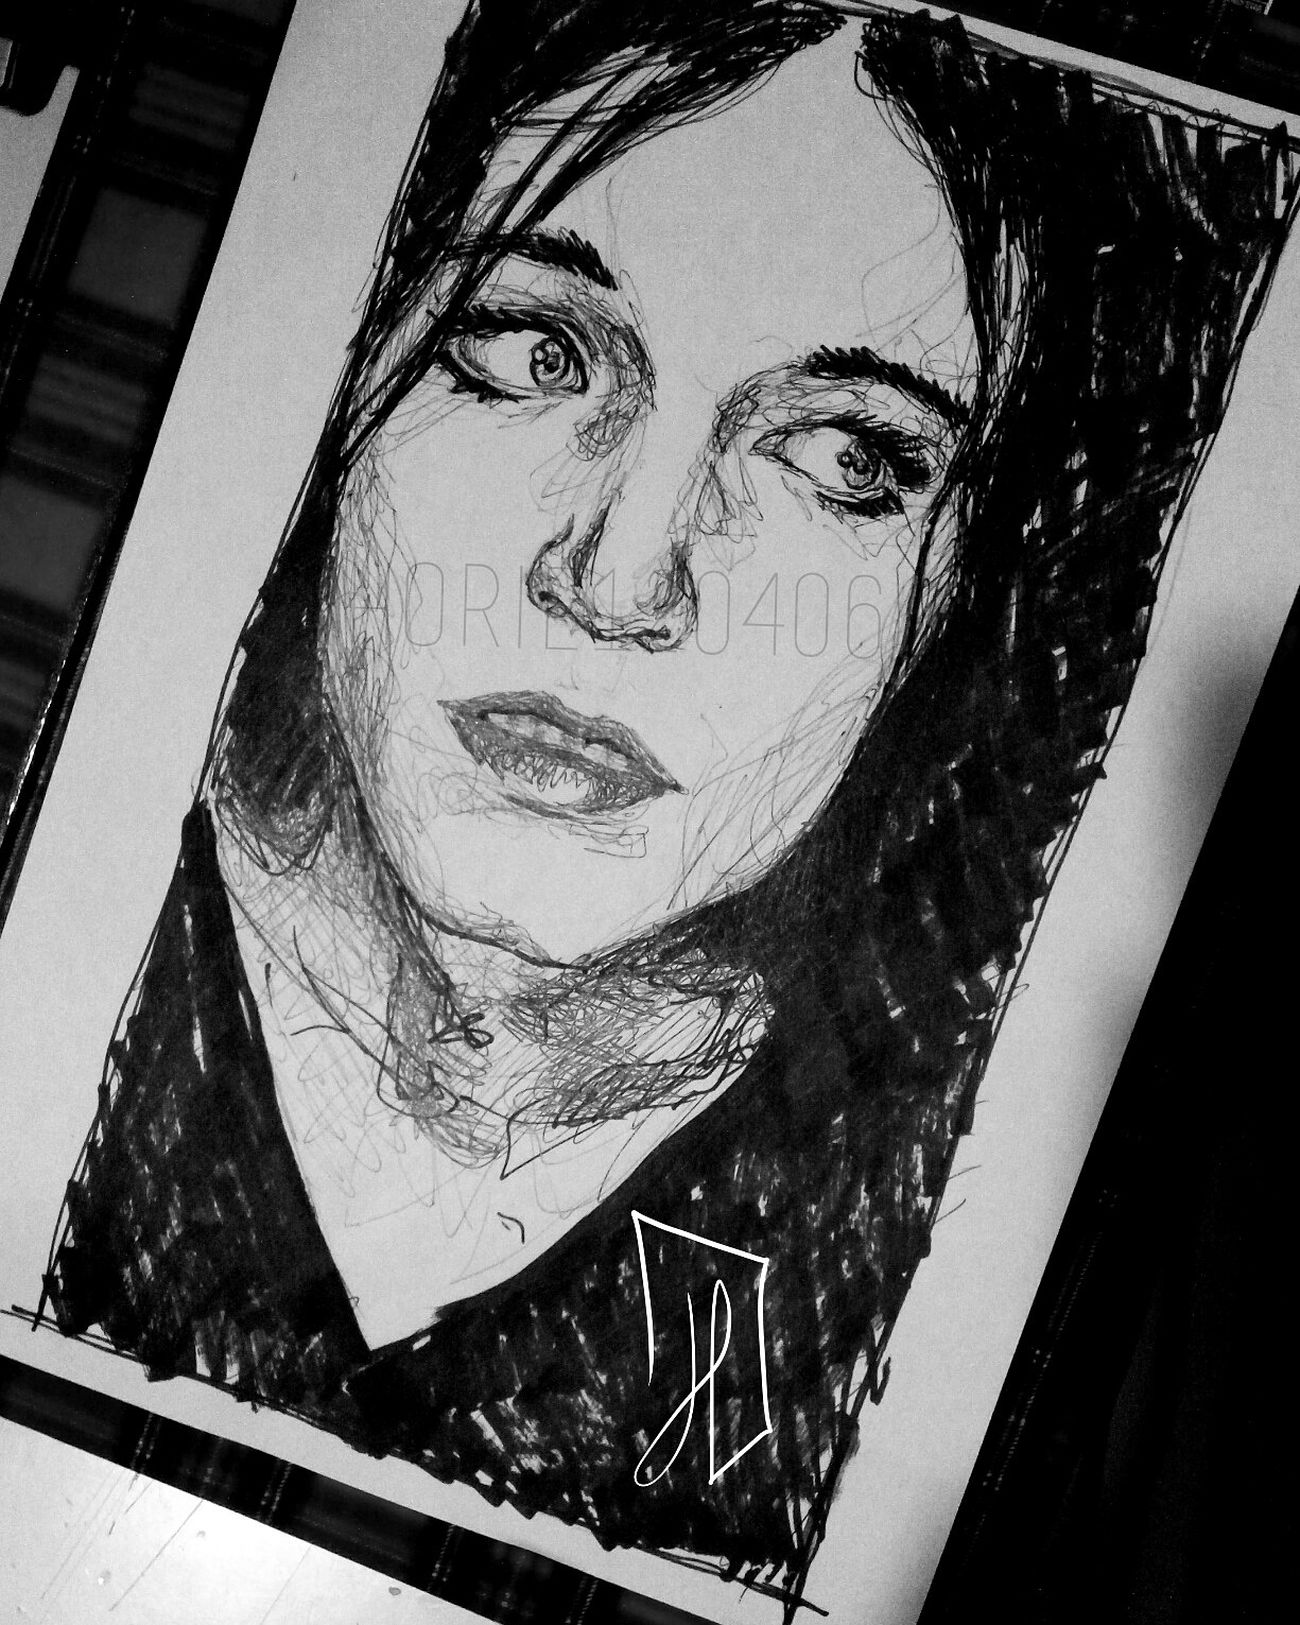 Qualcosa. — Doodleart Doodles Sketchy Sketches Artistic Work In Progress Sketching Artist ArtWork Music Portrait Art, Drawing, Creativity Sketchbook Doodle Doodling Sketch Art Wip Blackandwhite Paper Pen Markers  Brianmolko Placebo